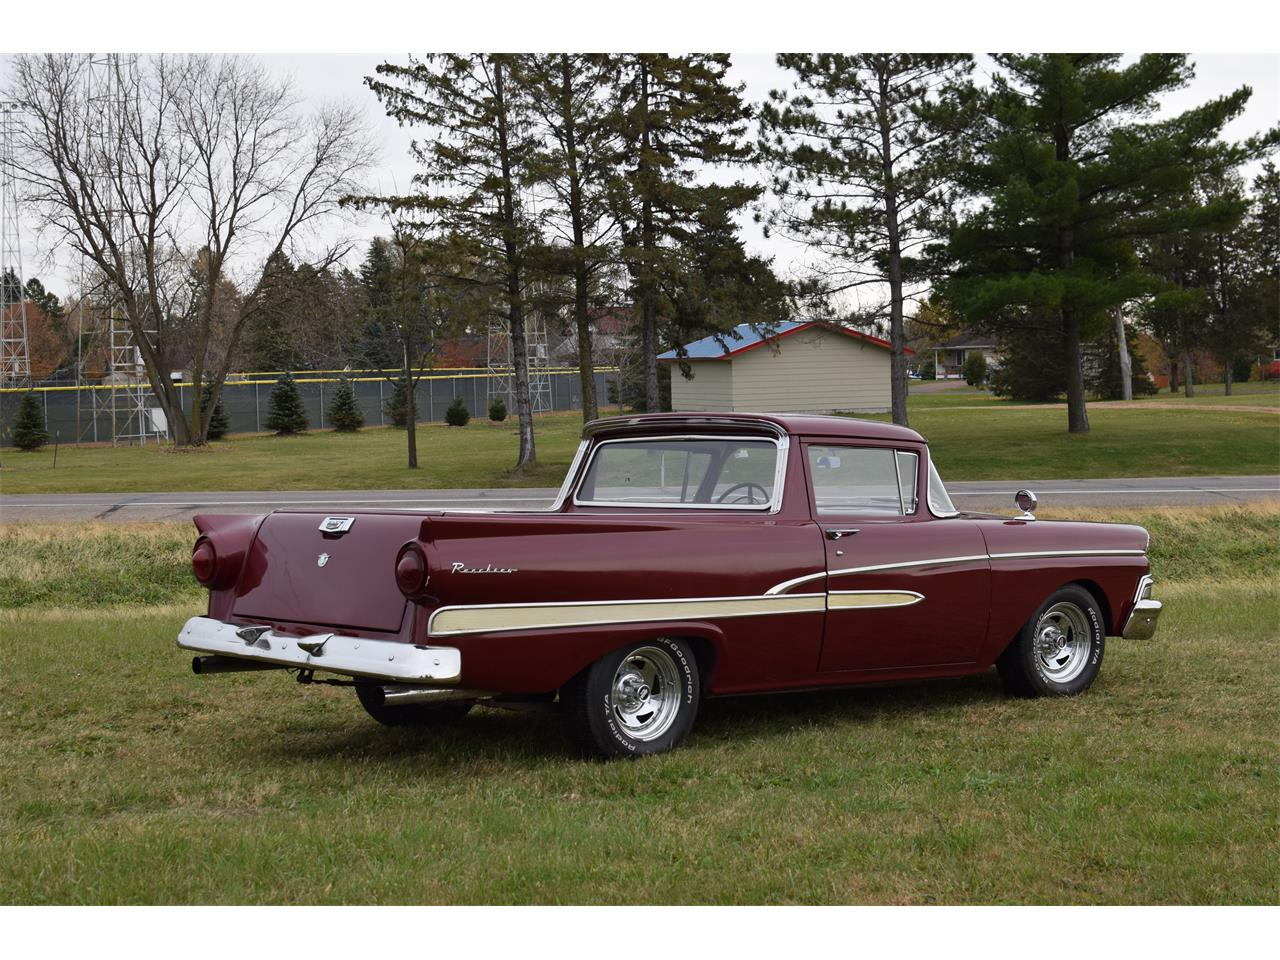 1958 Ford Ranchero for sale in Watertown, MN – photo 4